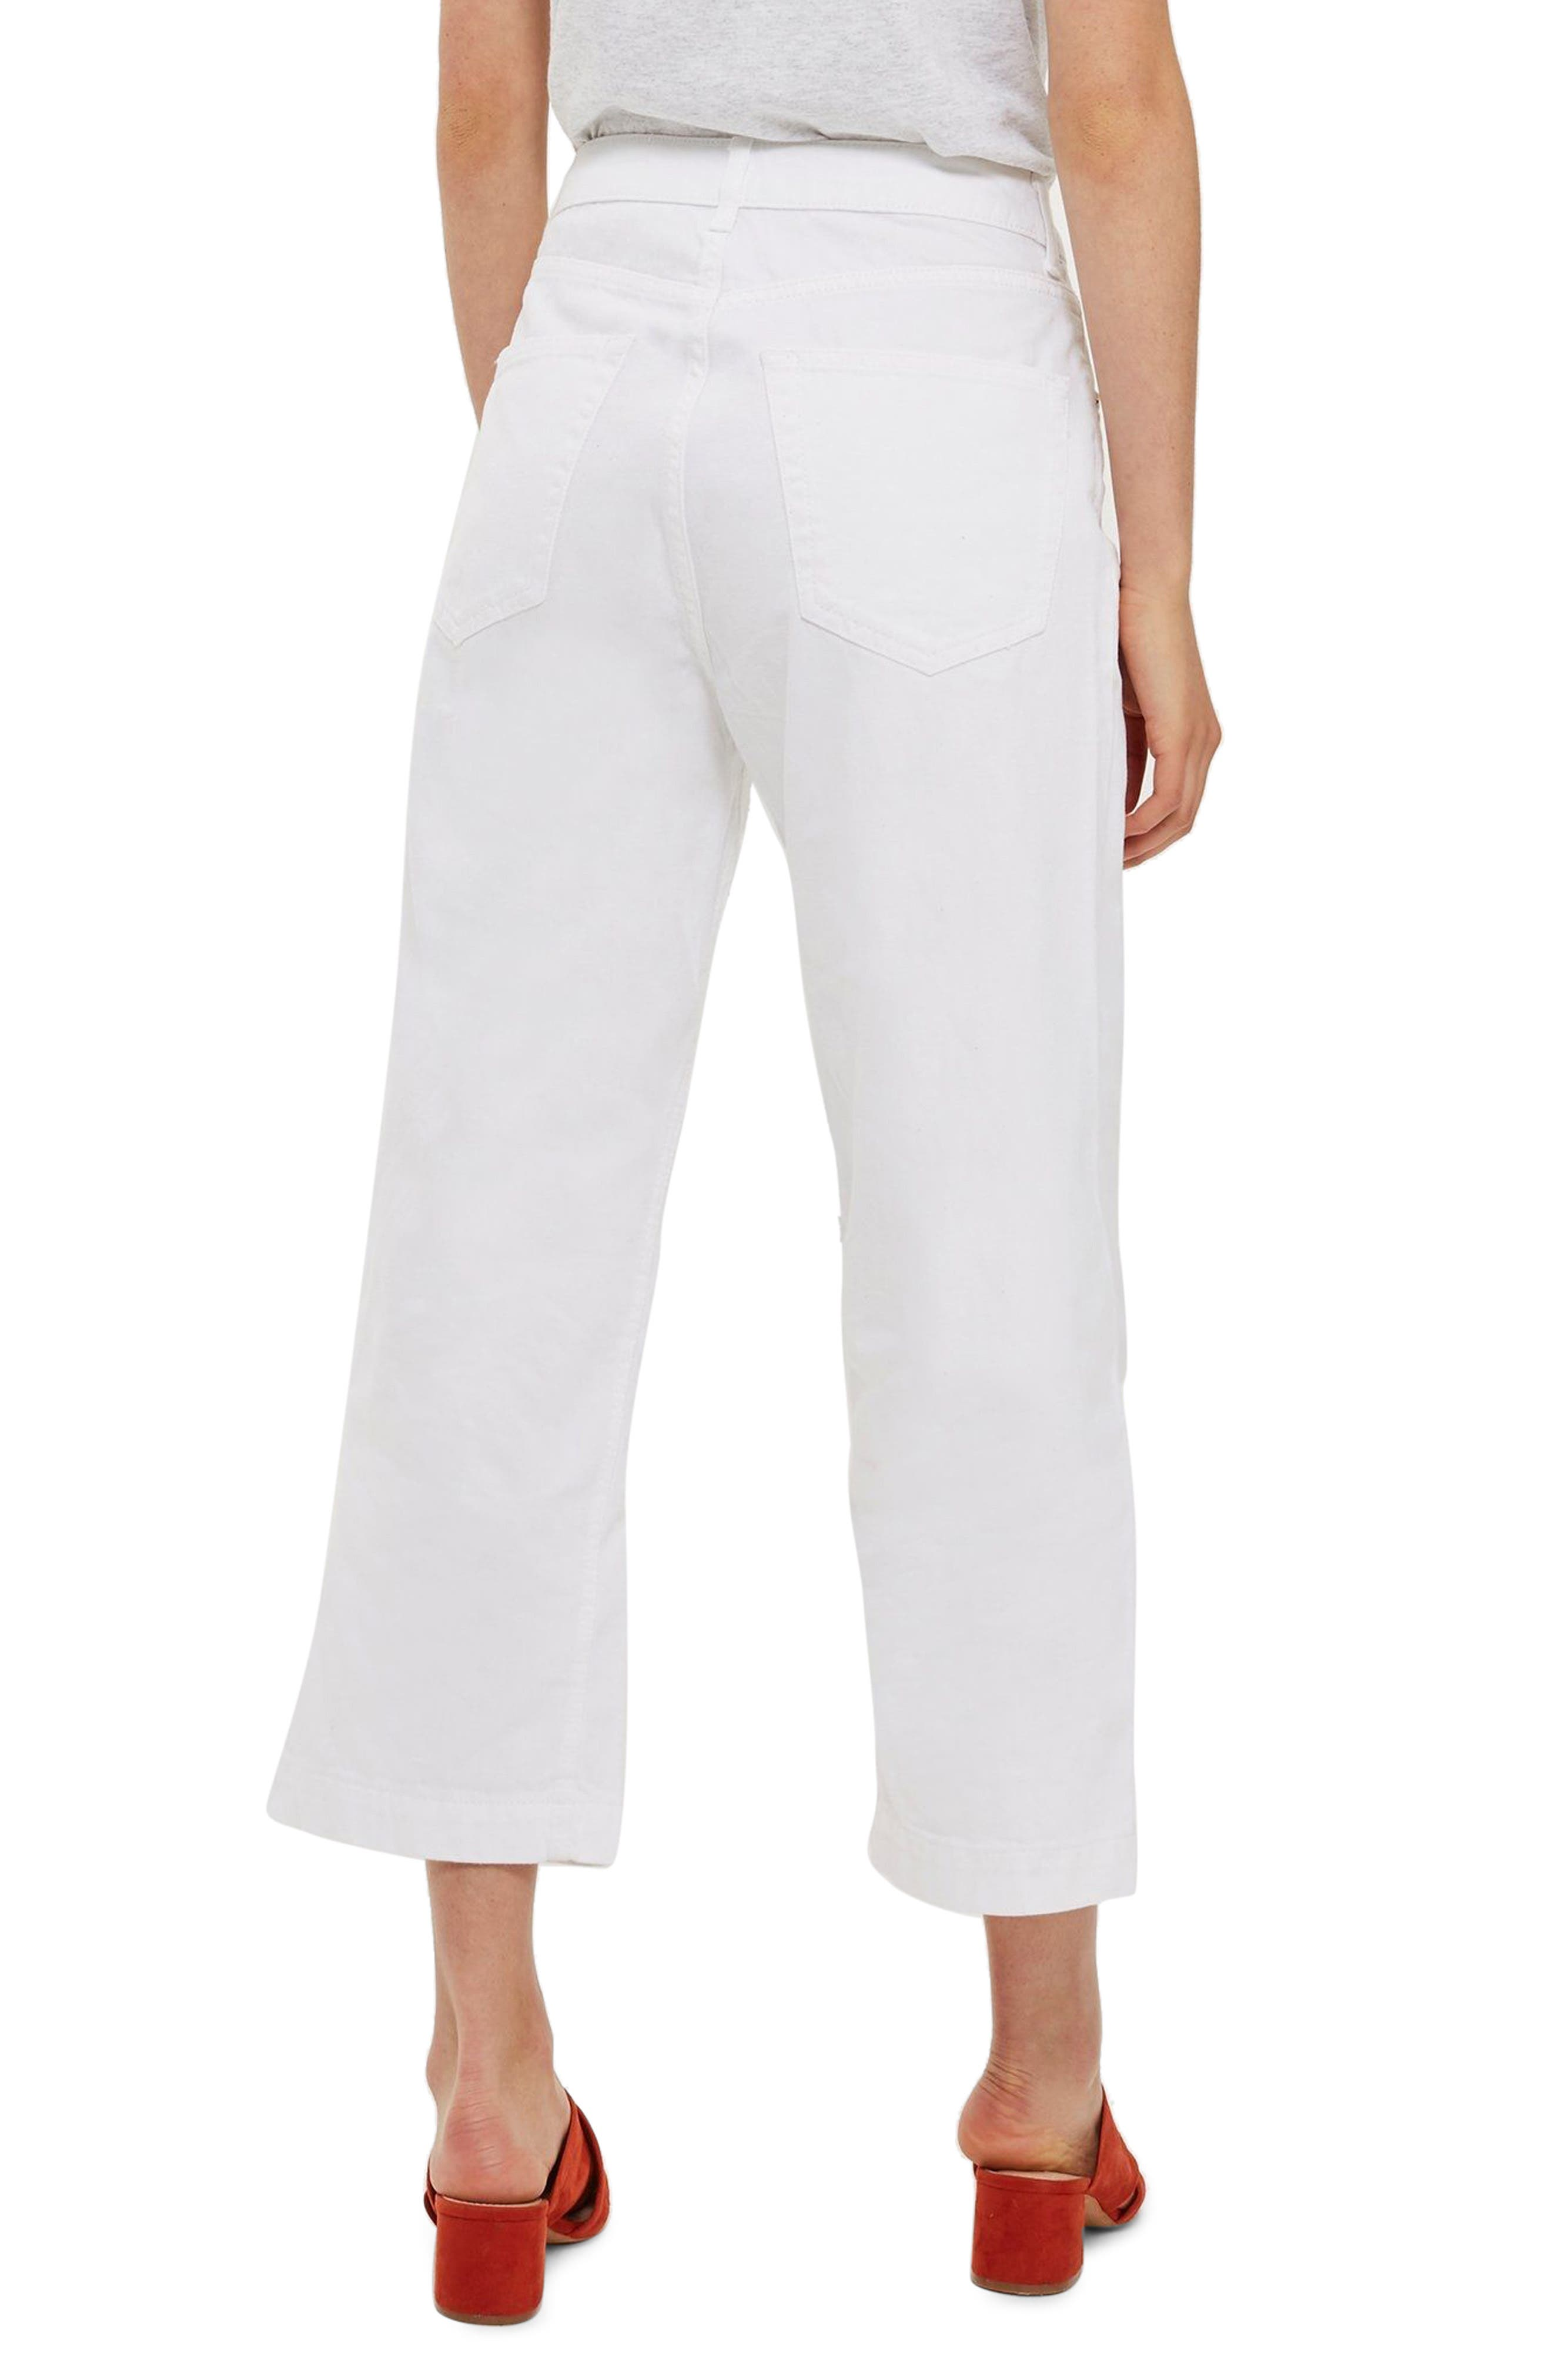 MOTO Cropped Wide Leg Non-Stretch Jeans,                             Alternate thumbnail 2, color,                             100